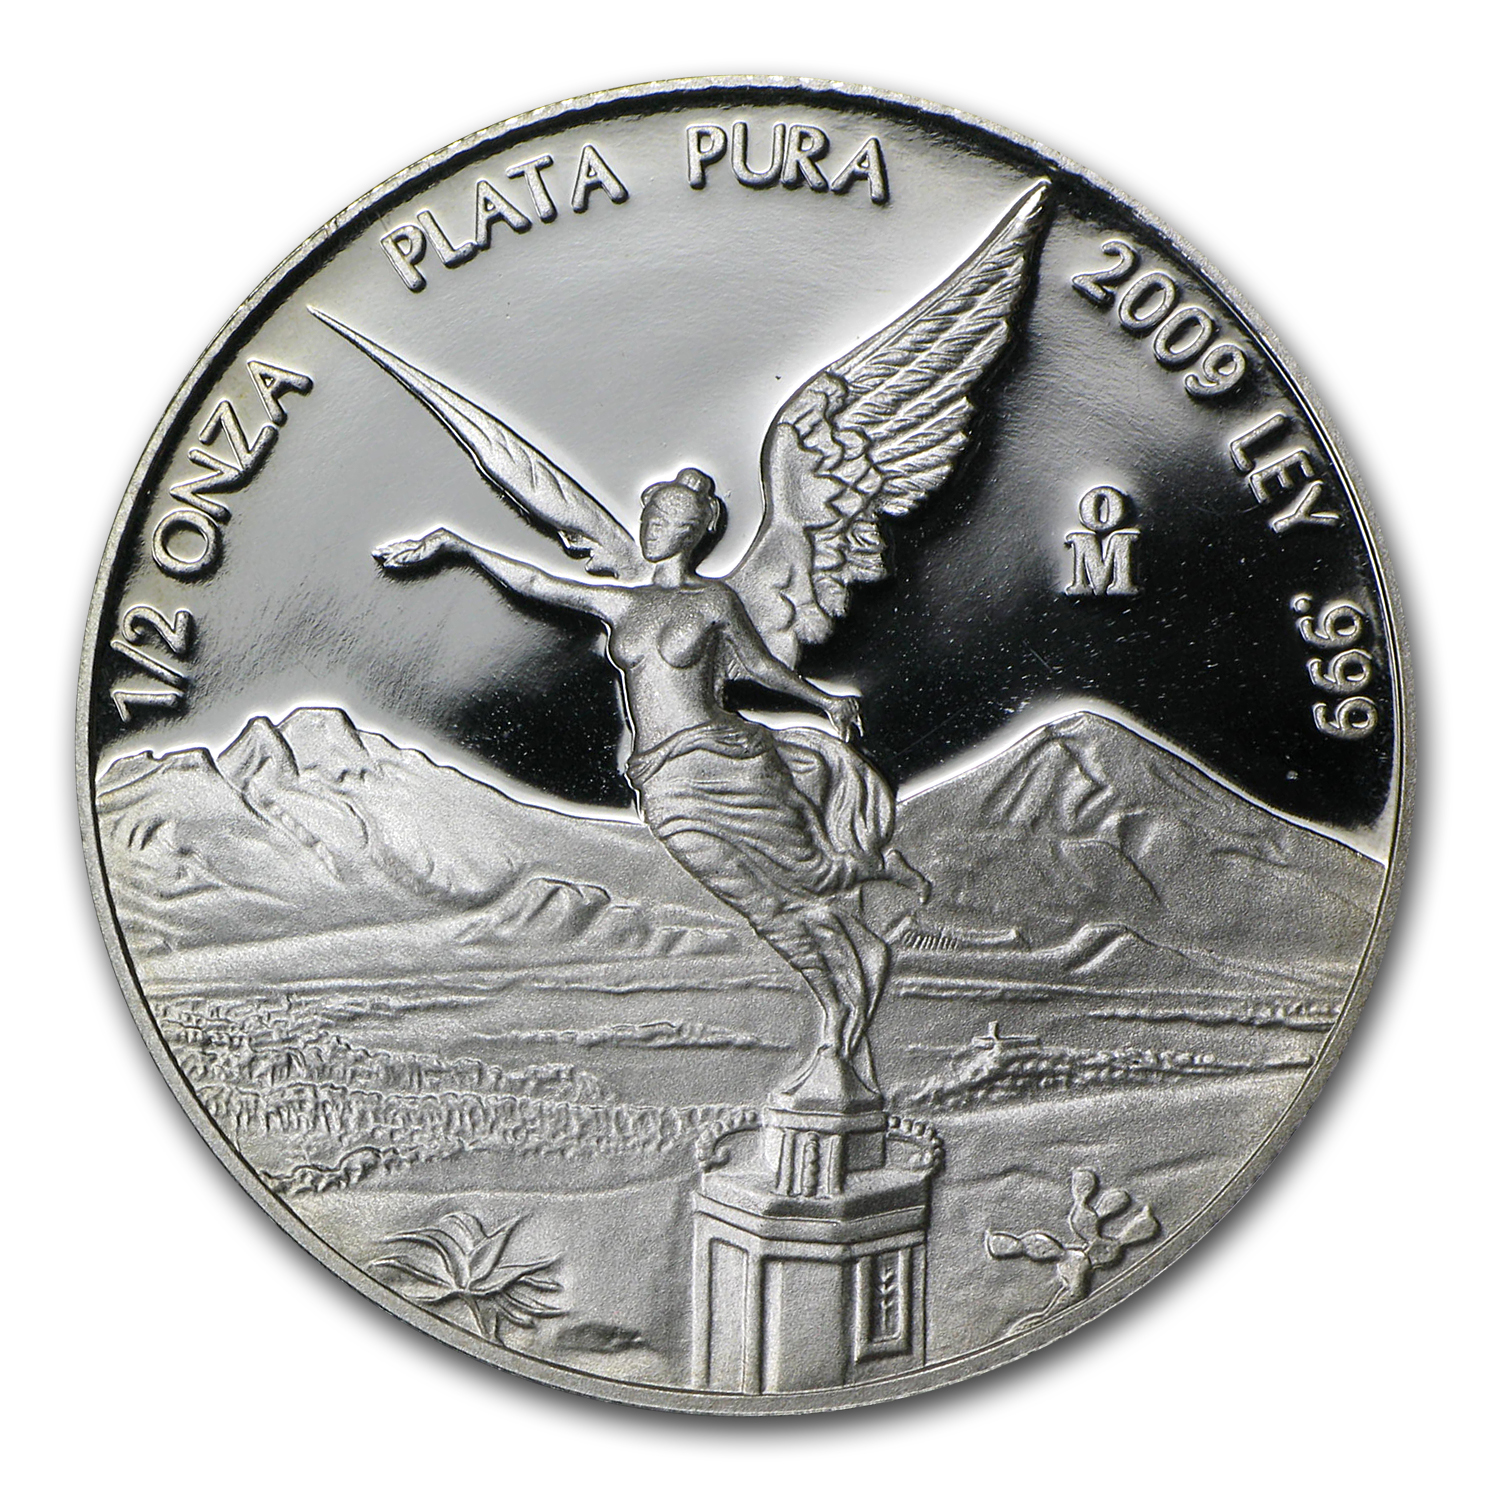 2009 Mexico 1/2 oz Silver Libertad Proof (In Capsule)